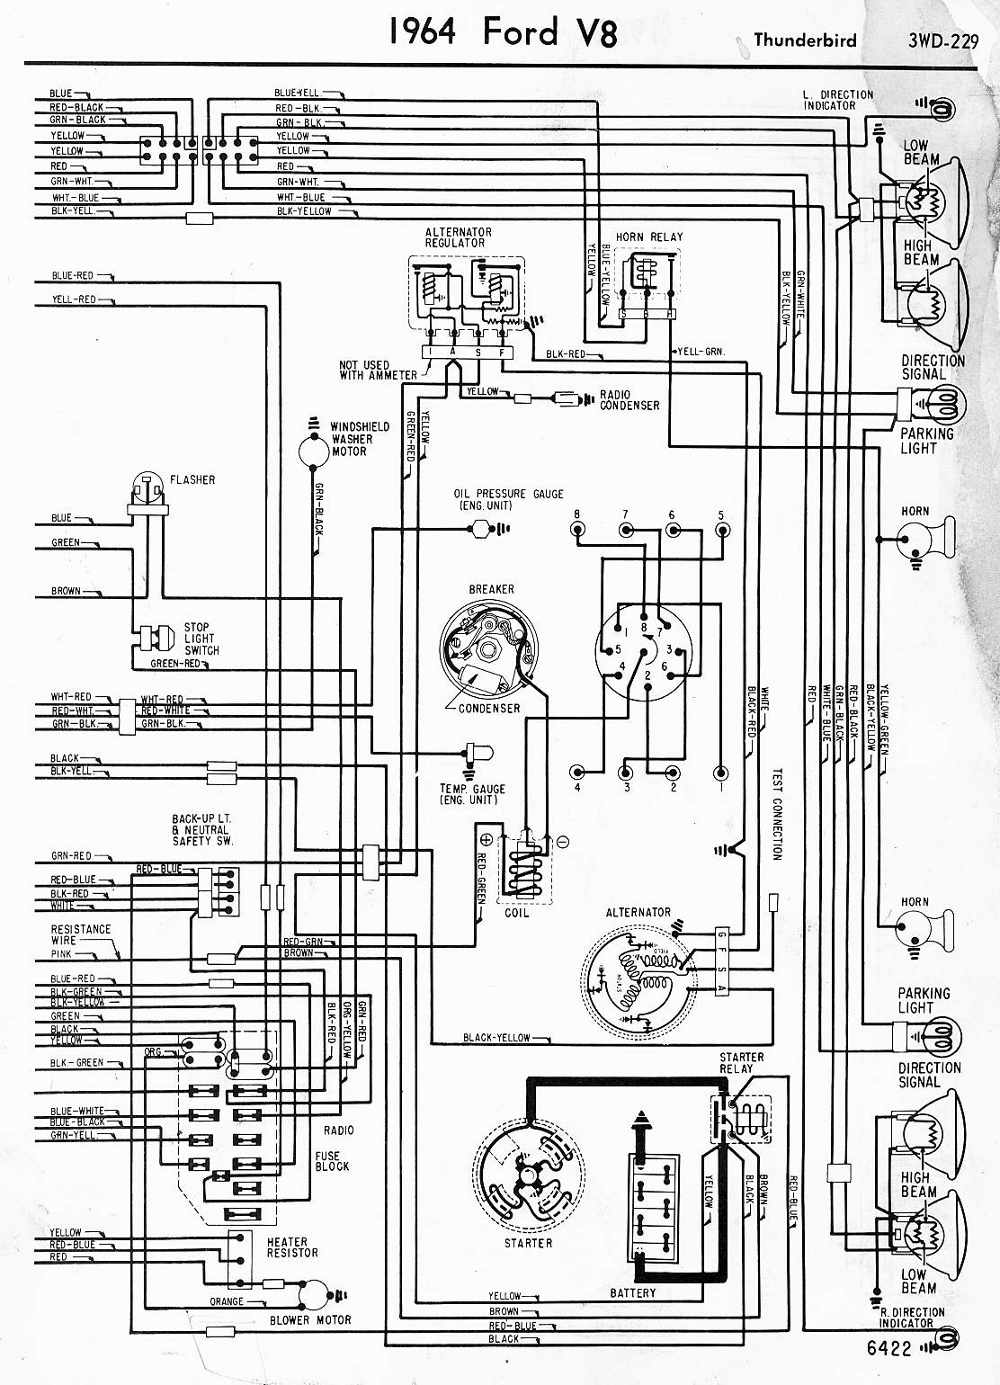 externally regulated alternator wiring diagram free download ford mustang alternator wiring diagram